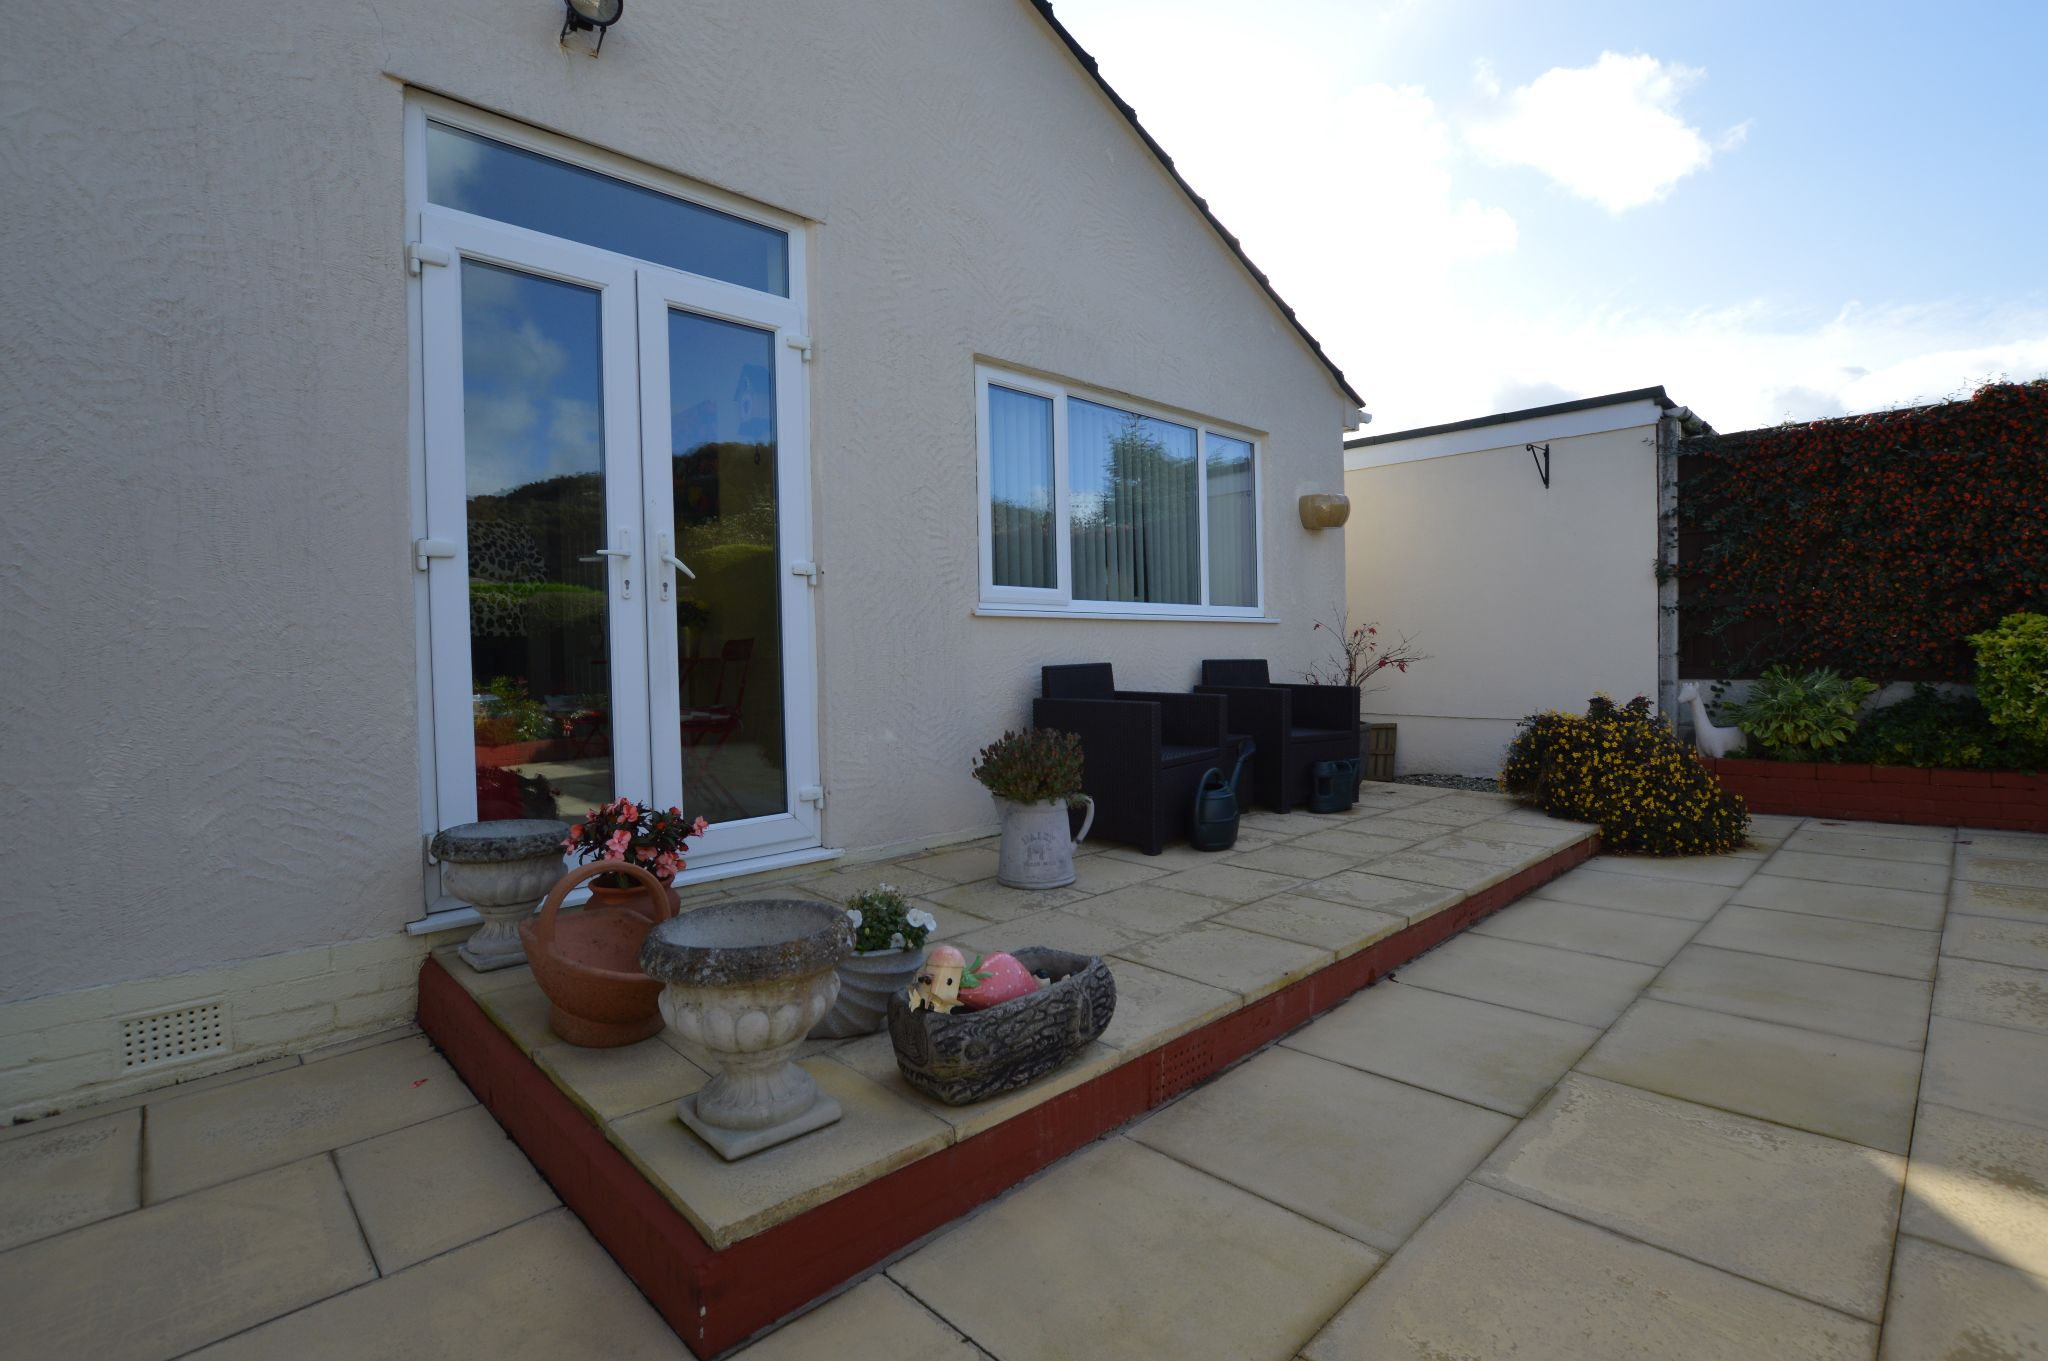 2 bedroom detached bungalow For Sale in Abergele - Patio